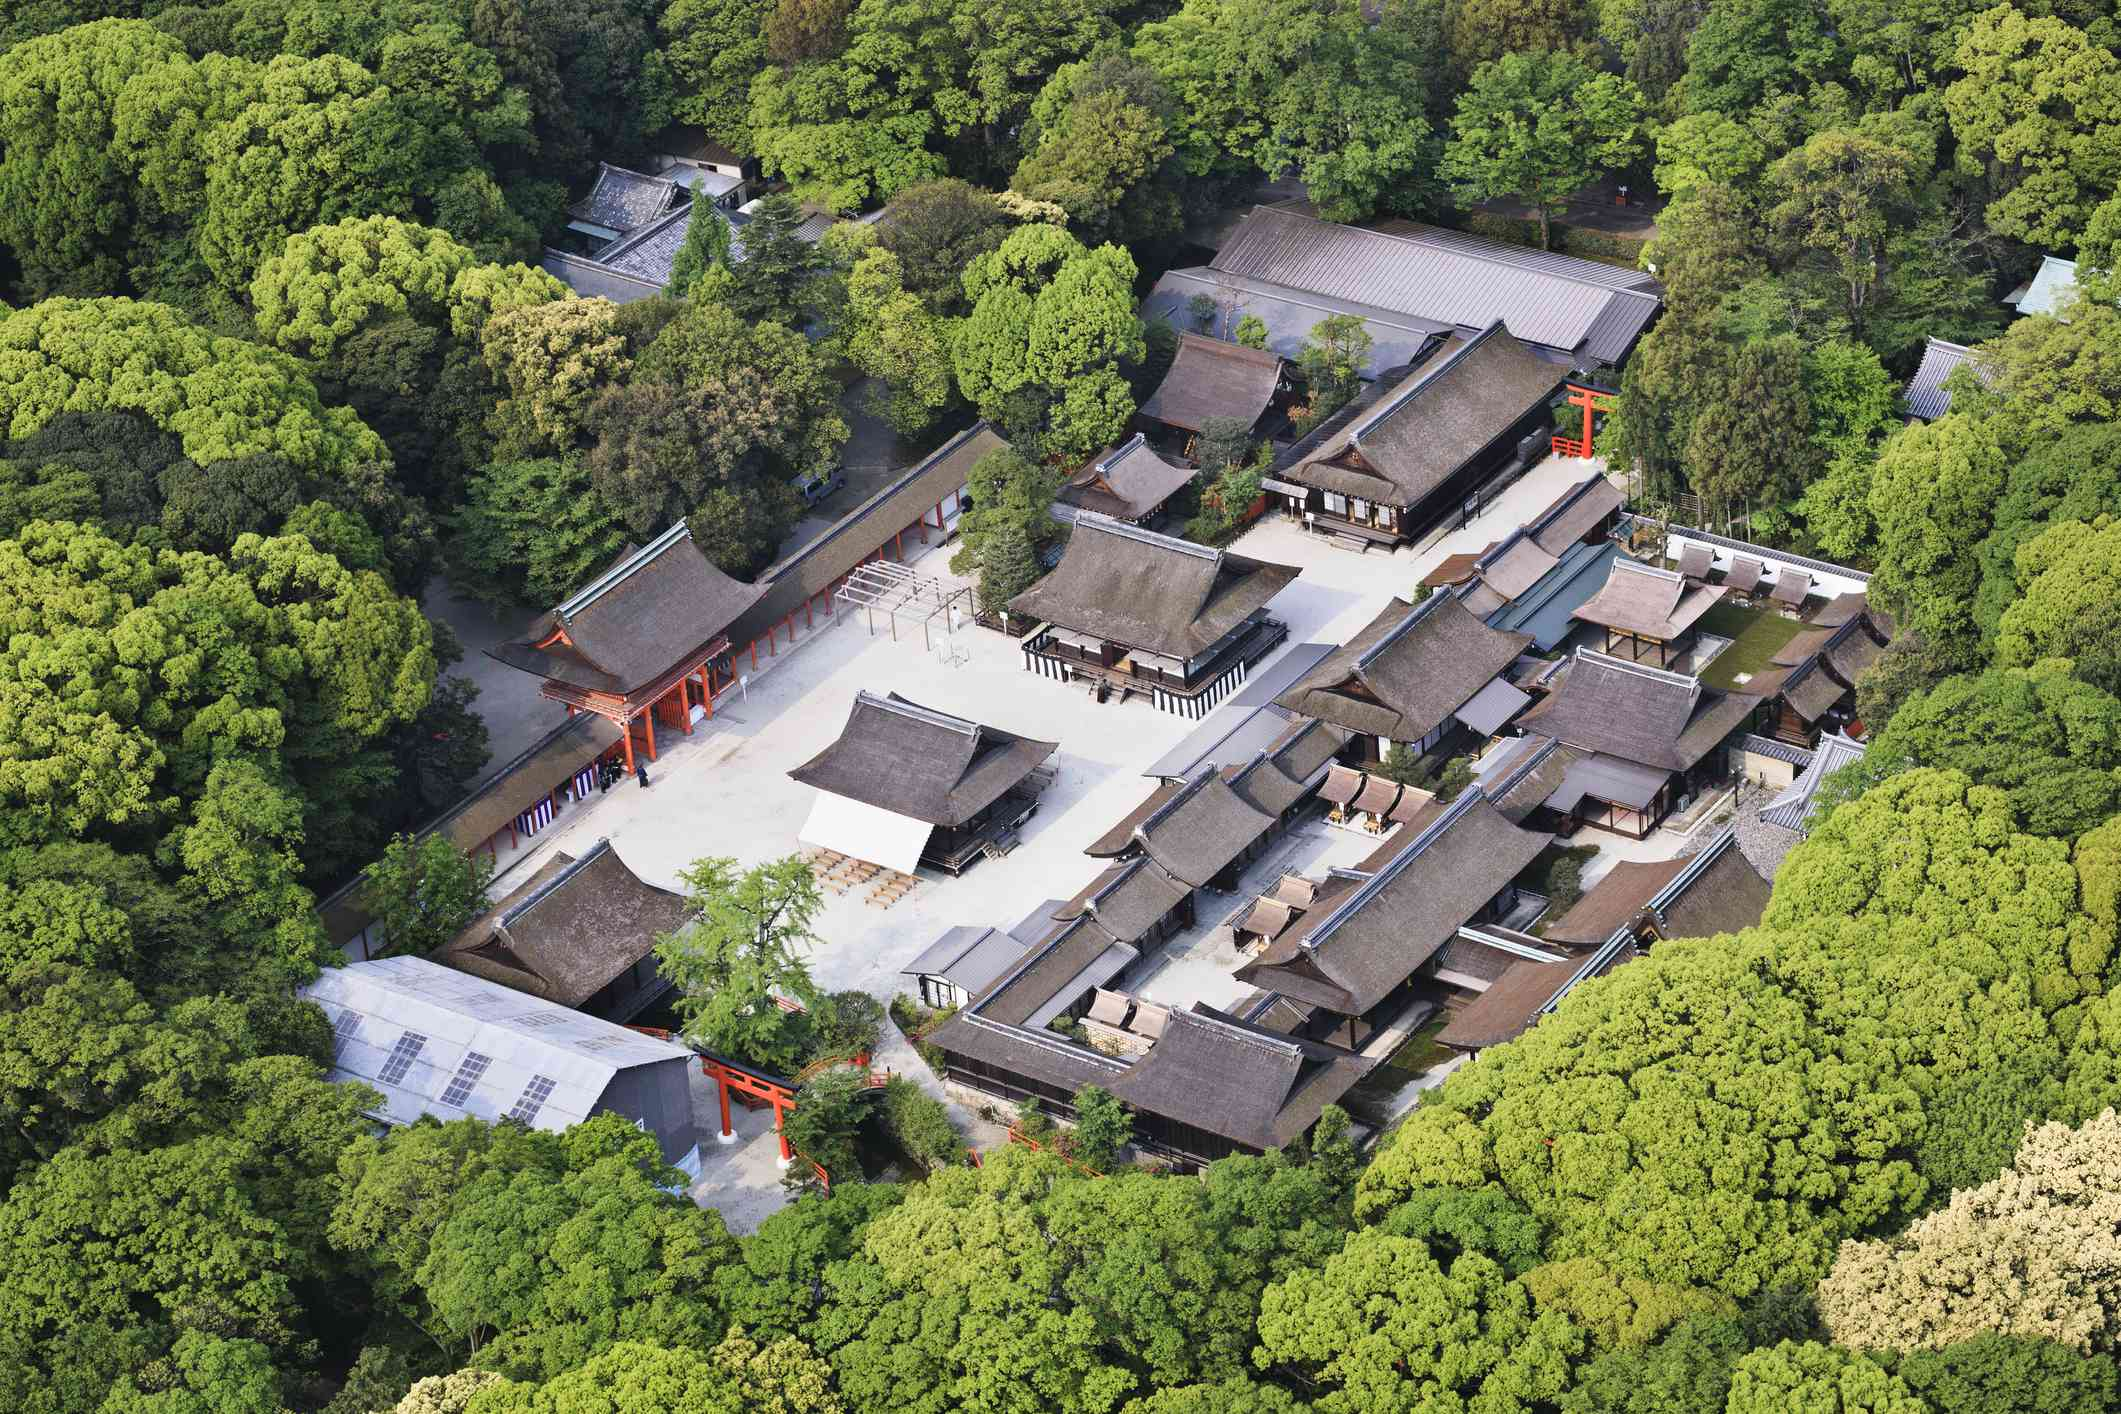 Aerial view of Shimogamo shrine and forest